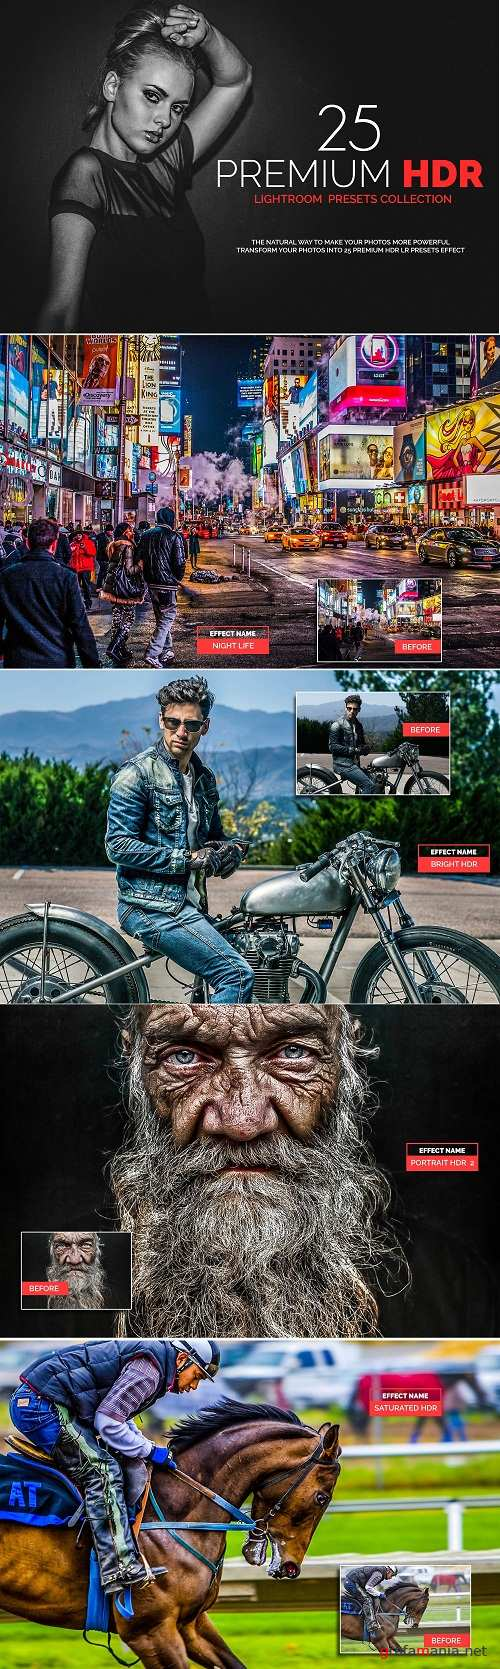 25 Premium HDR Lightroom Presets 3135123